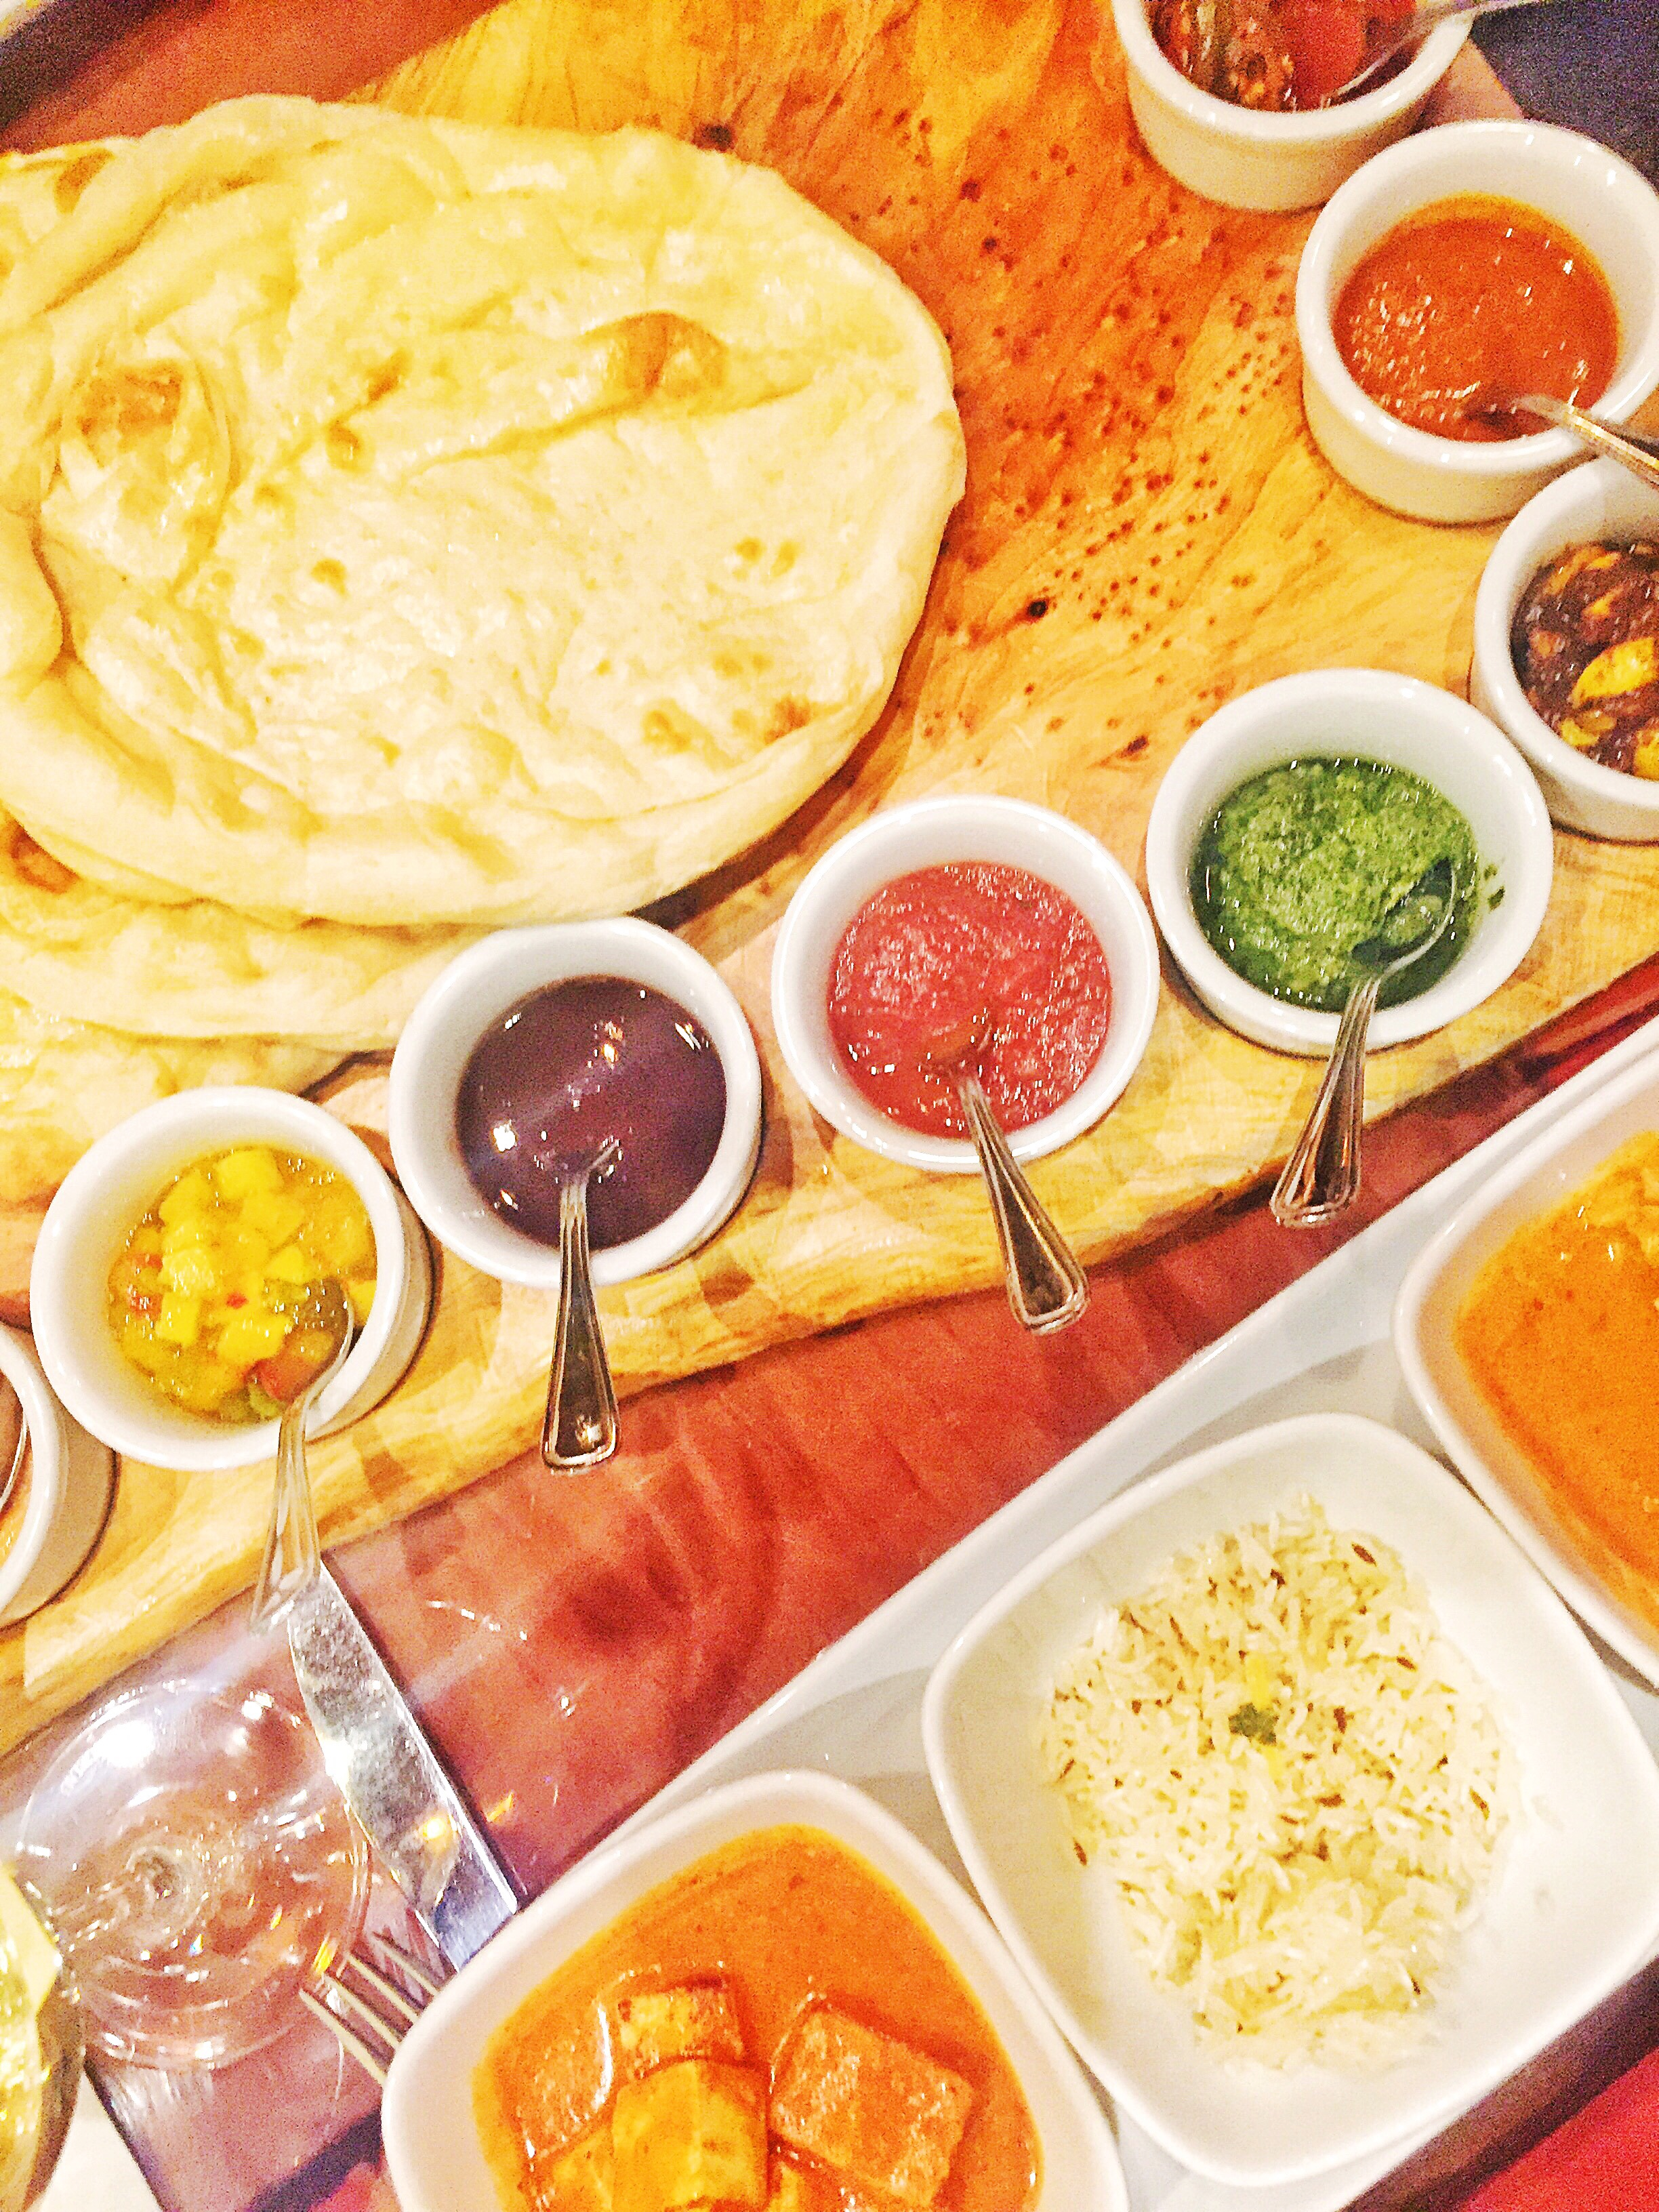 Sanaa's Indian-Style Bread Service | Rosé and Reservations